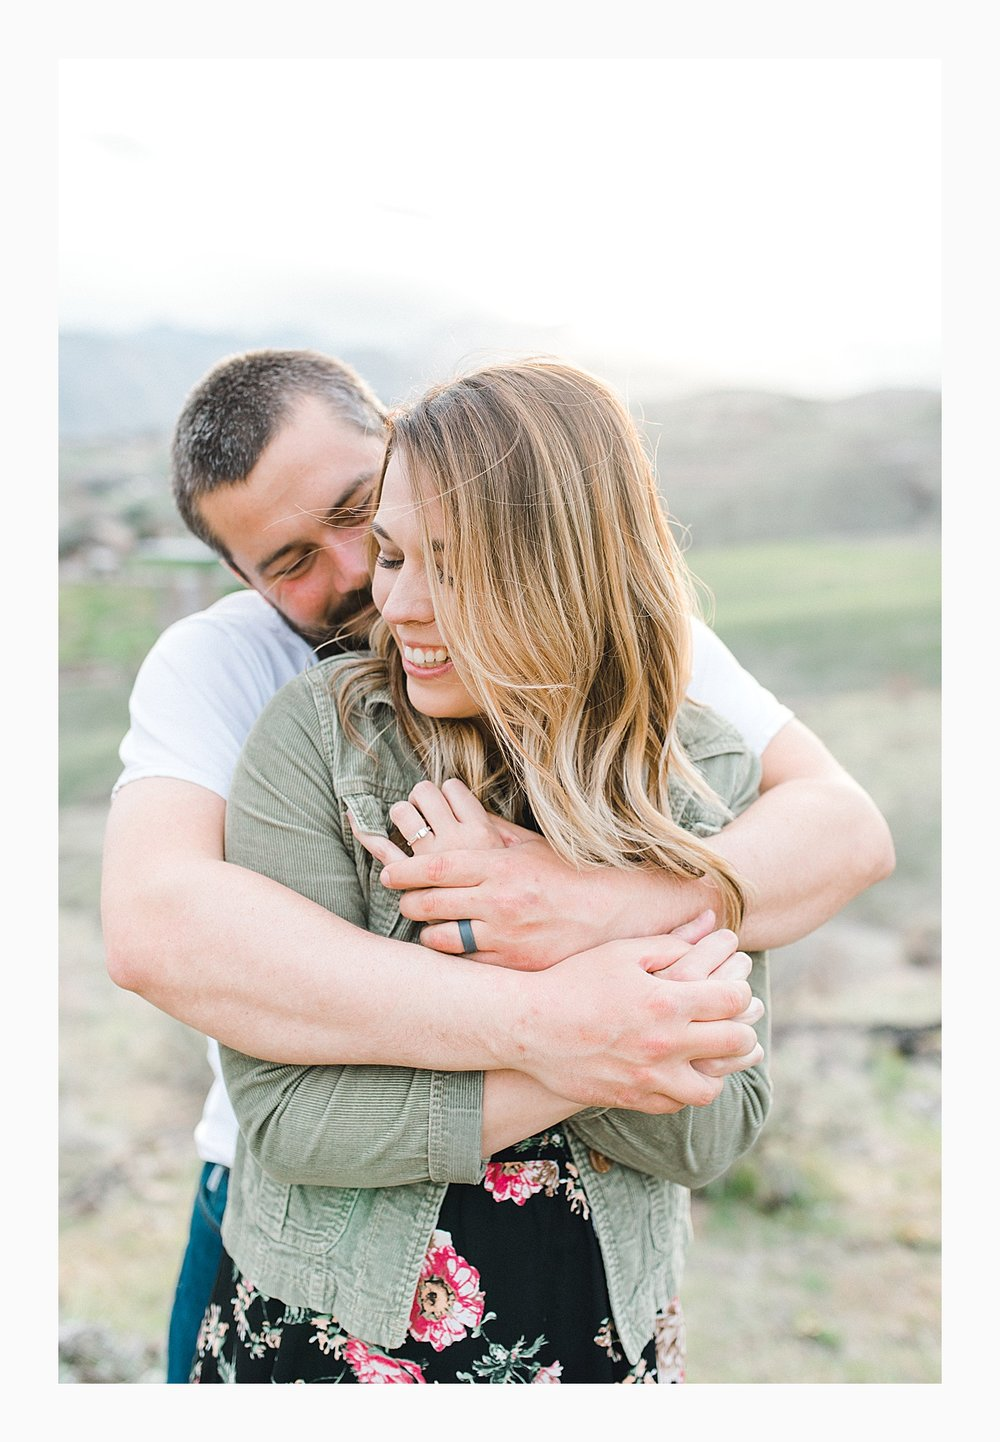 Pacific Northwest Engagement Session in the Sagebrush with Emma Rose Company who is a light and airy wedding photographer based in Seattle, Washington_0030.jpg